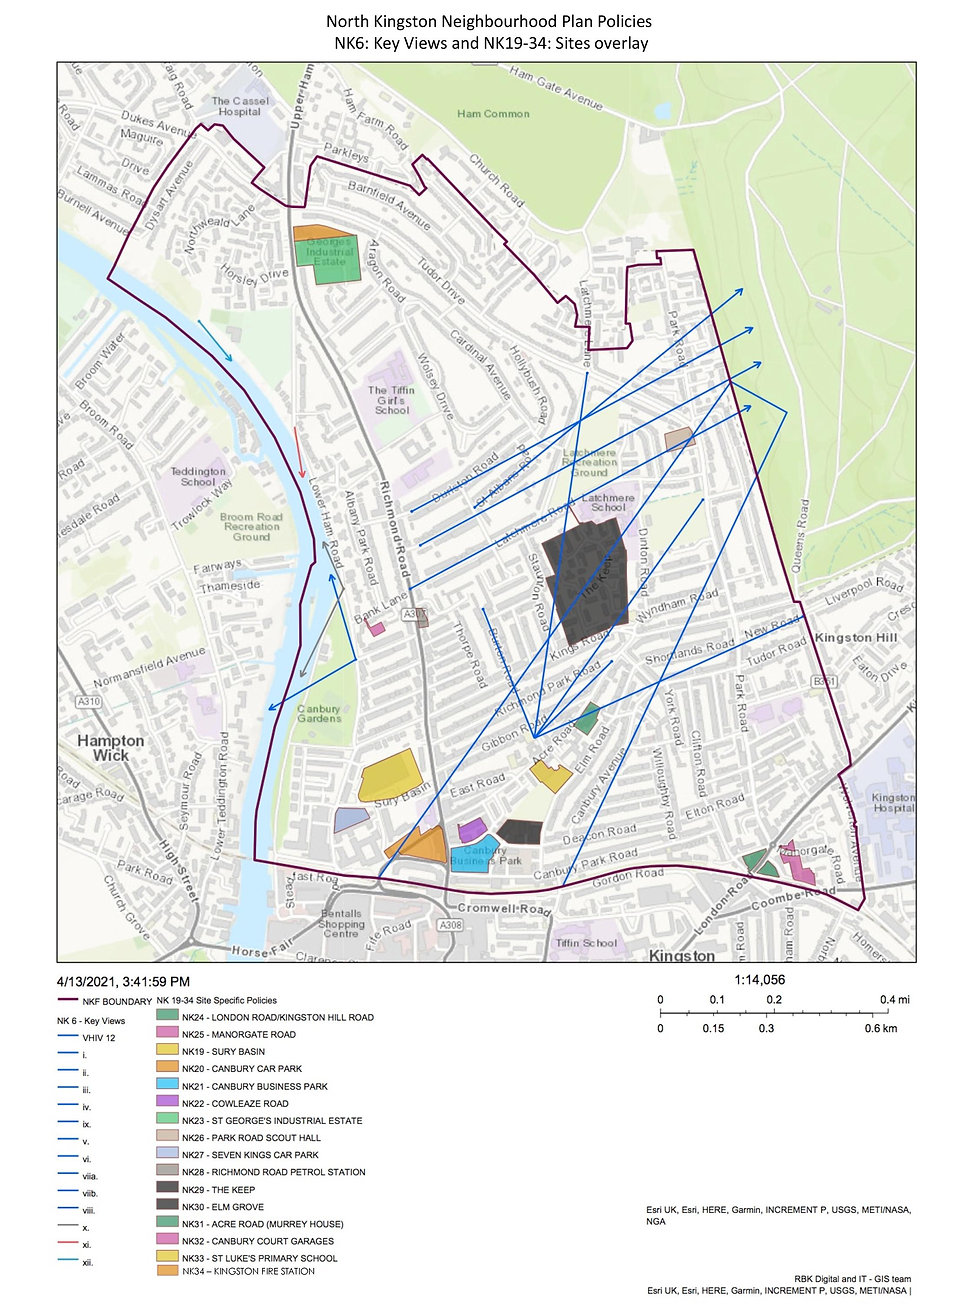 NKNPlan Policy map NK6 and NK19-34 overl